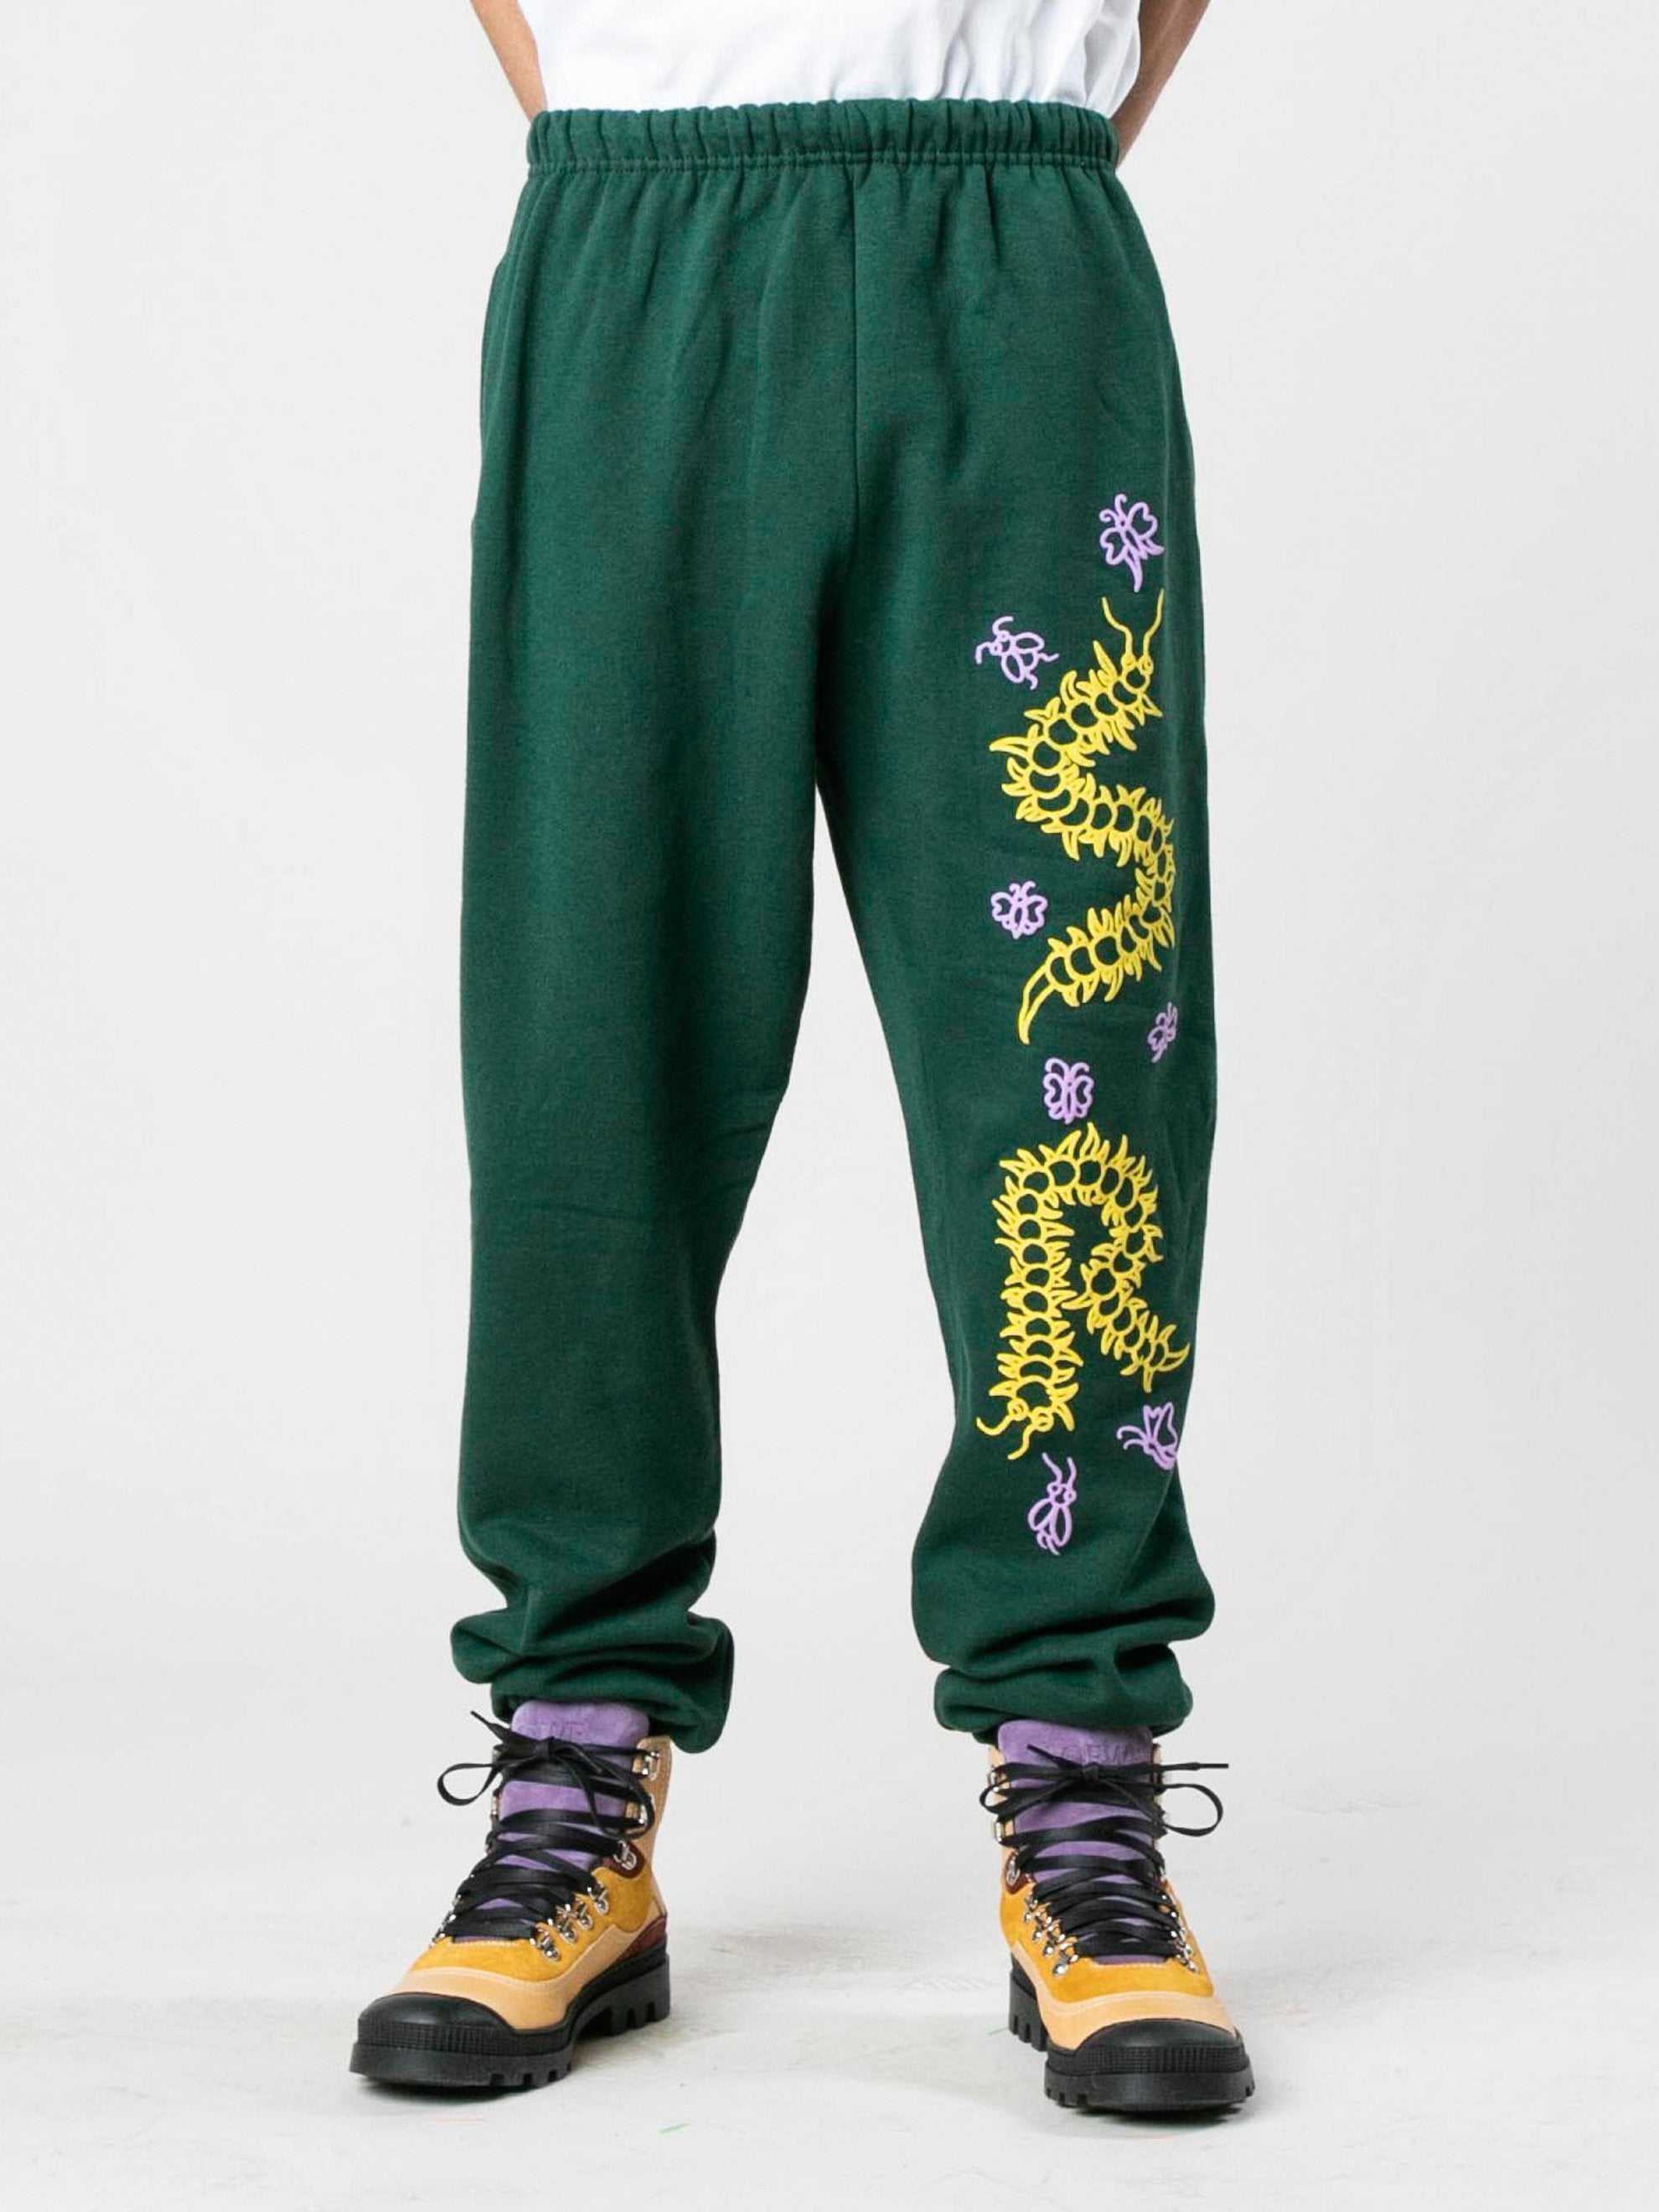 Green Caterpillar Puff Print Sweatpants 2